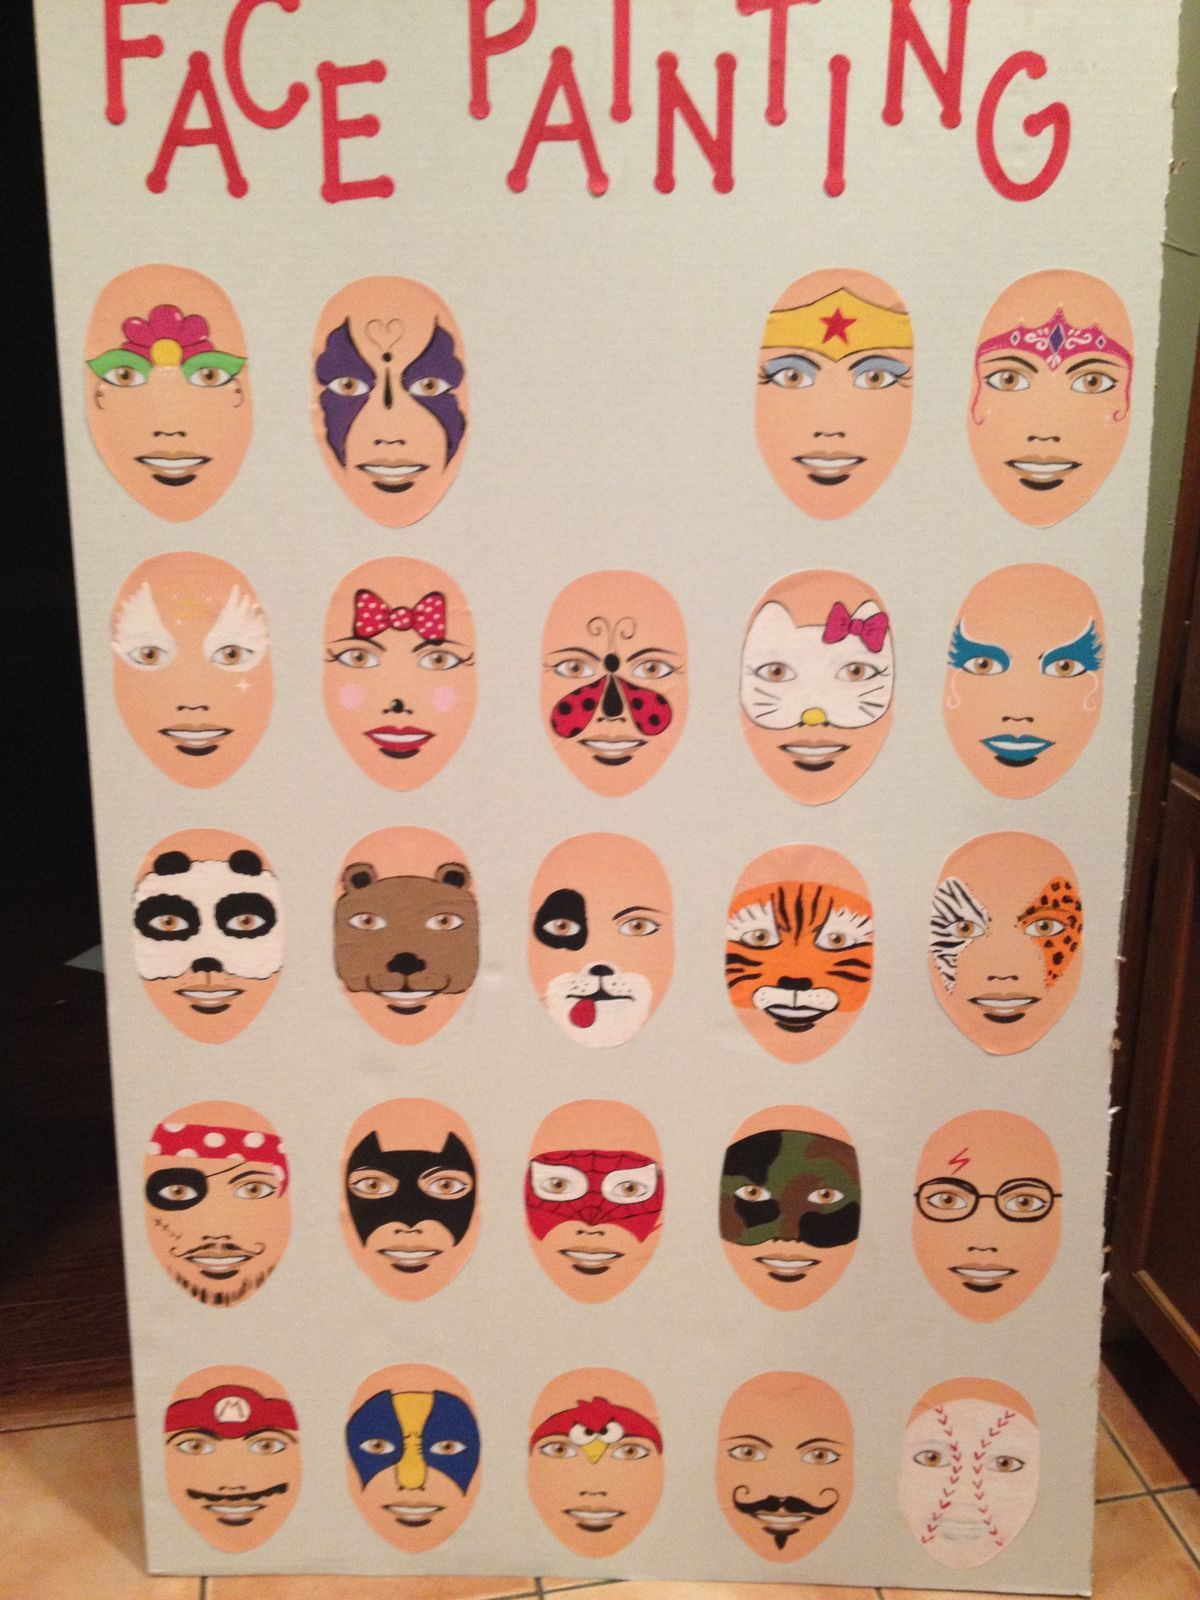 Dynamite image intended for simple face painting designs printable